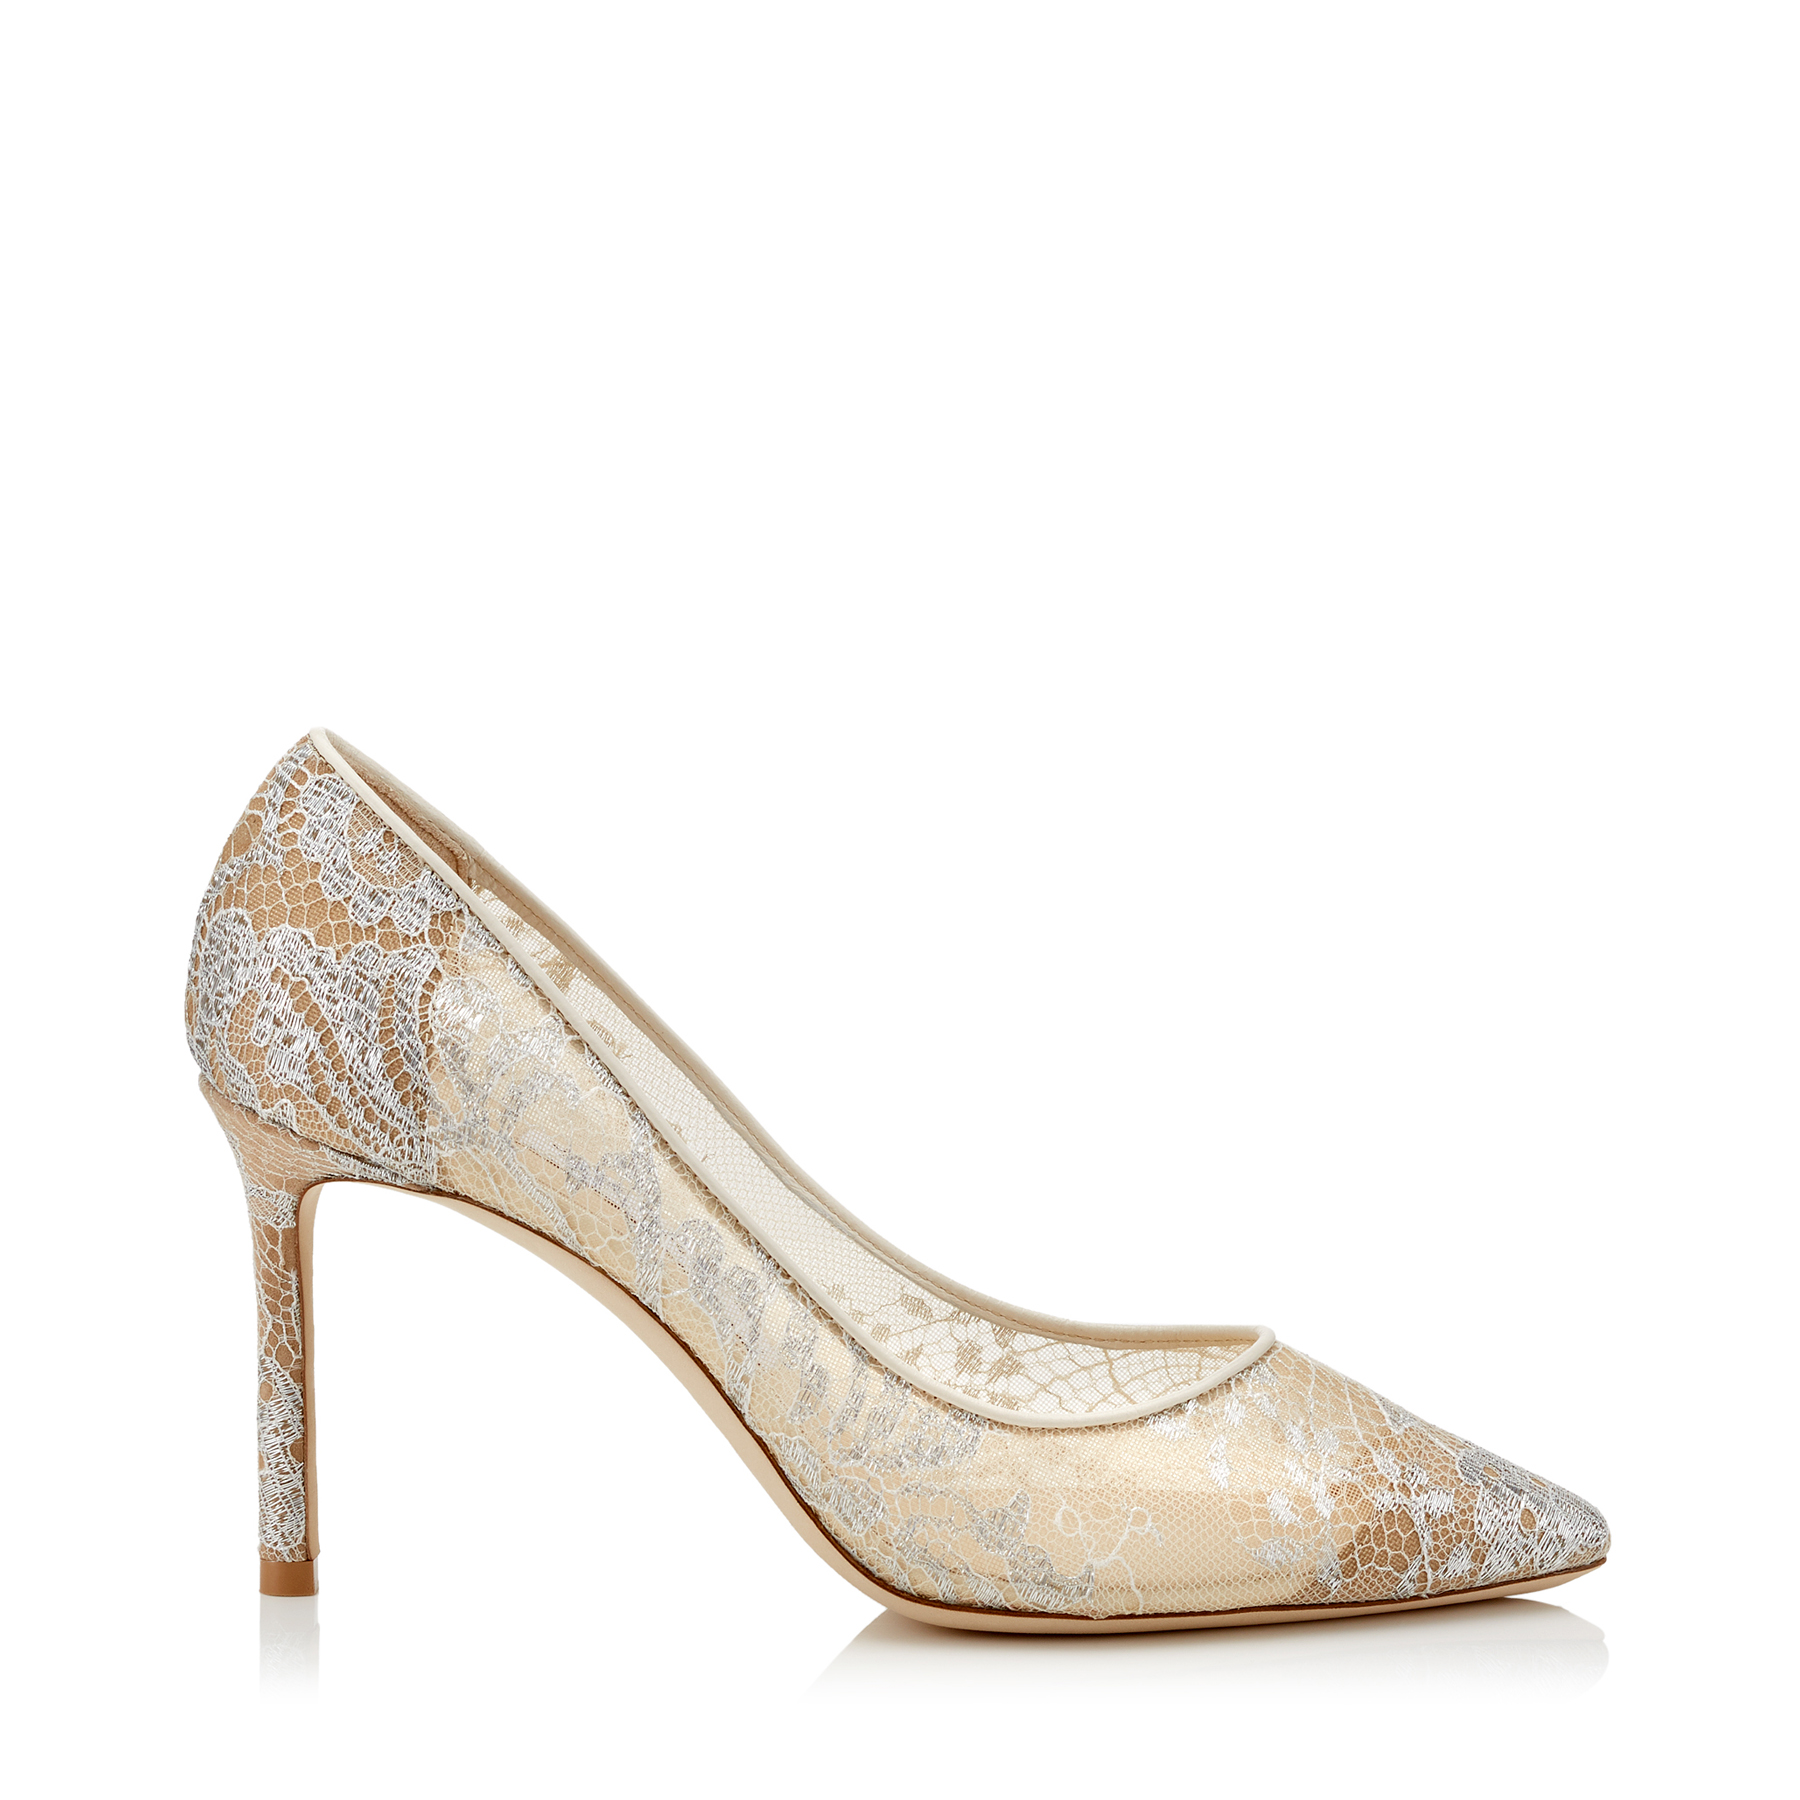 ROMY 85 White Lace Pointy Toe Pumps